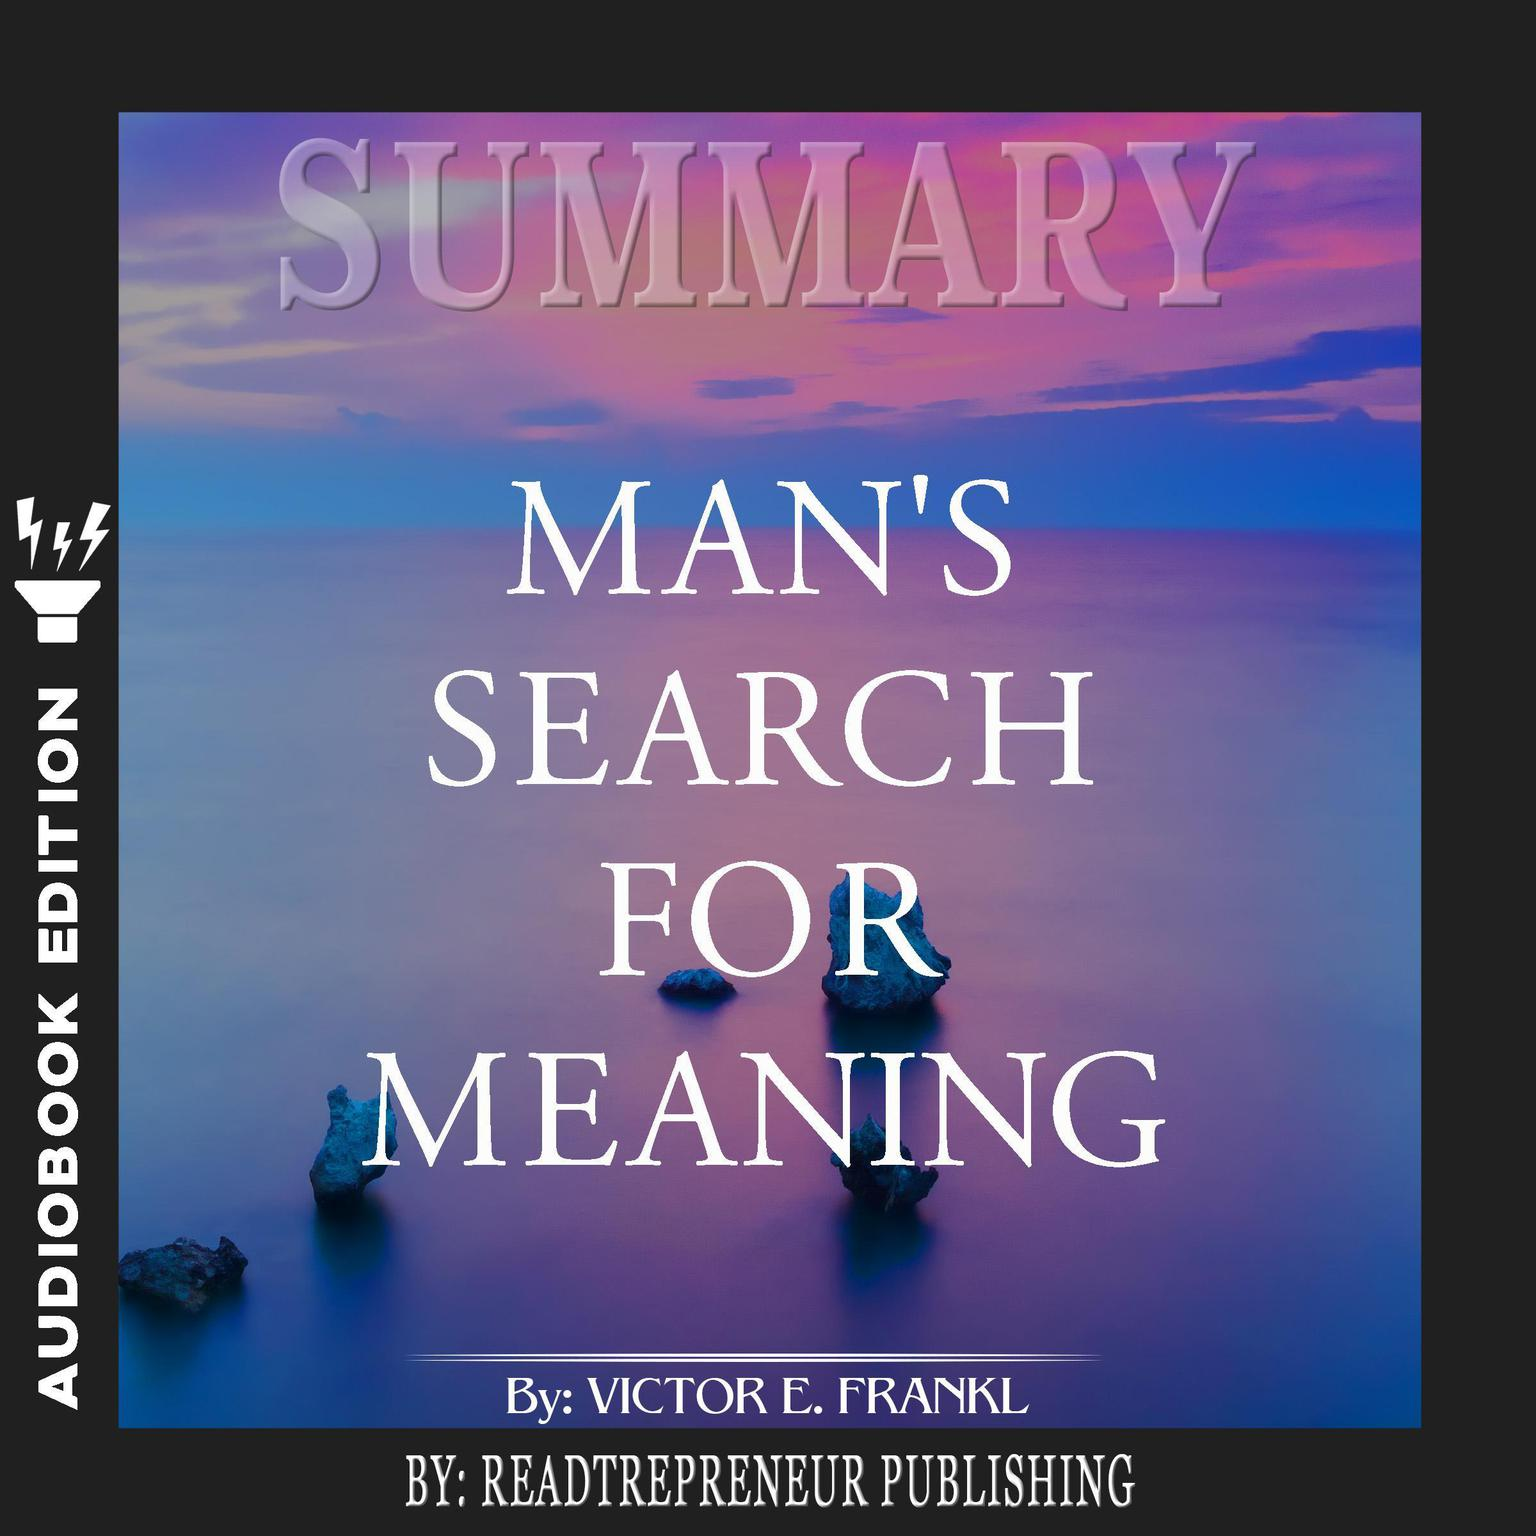 Printable Summary of Man's Search for Meaning by Viktor E. Frankl Audiobook Cover Art